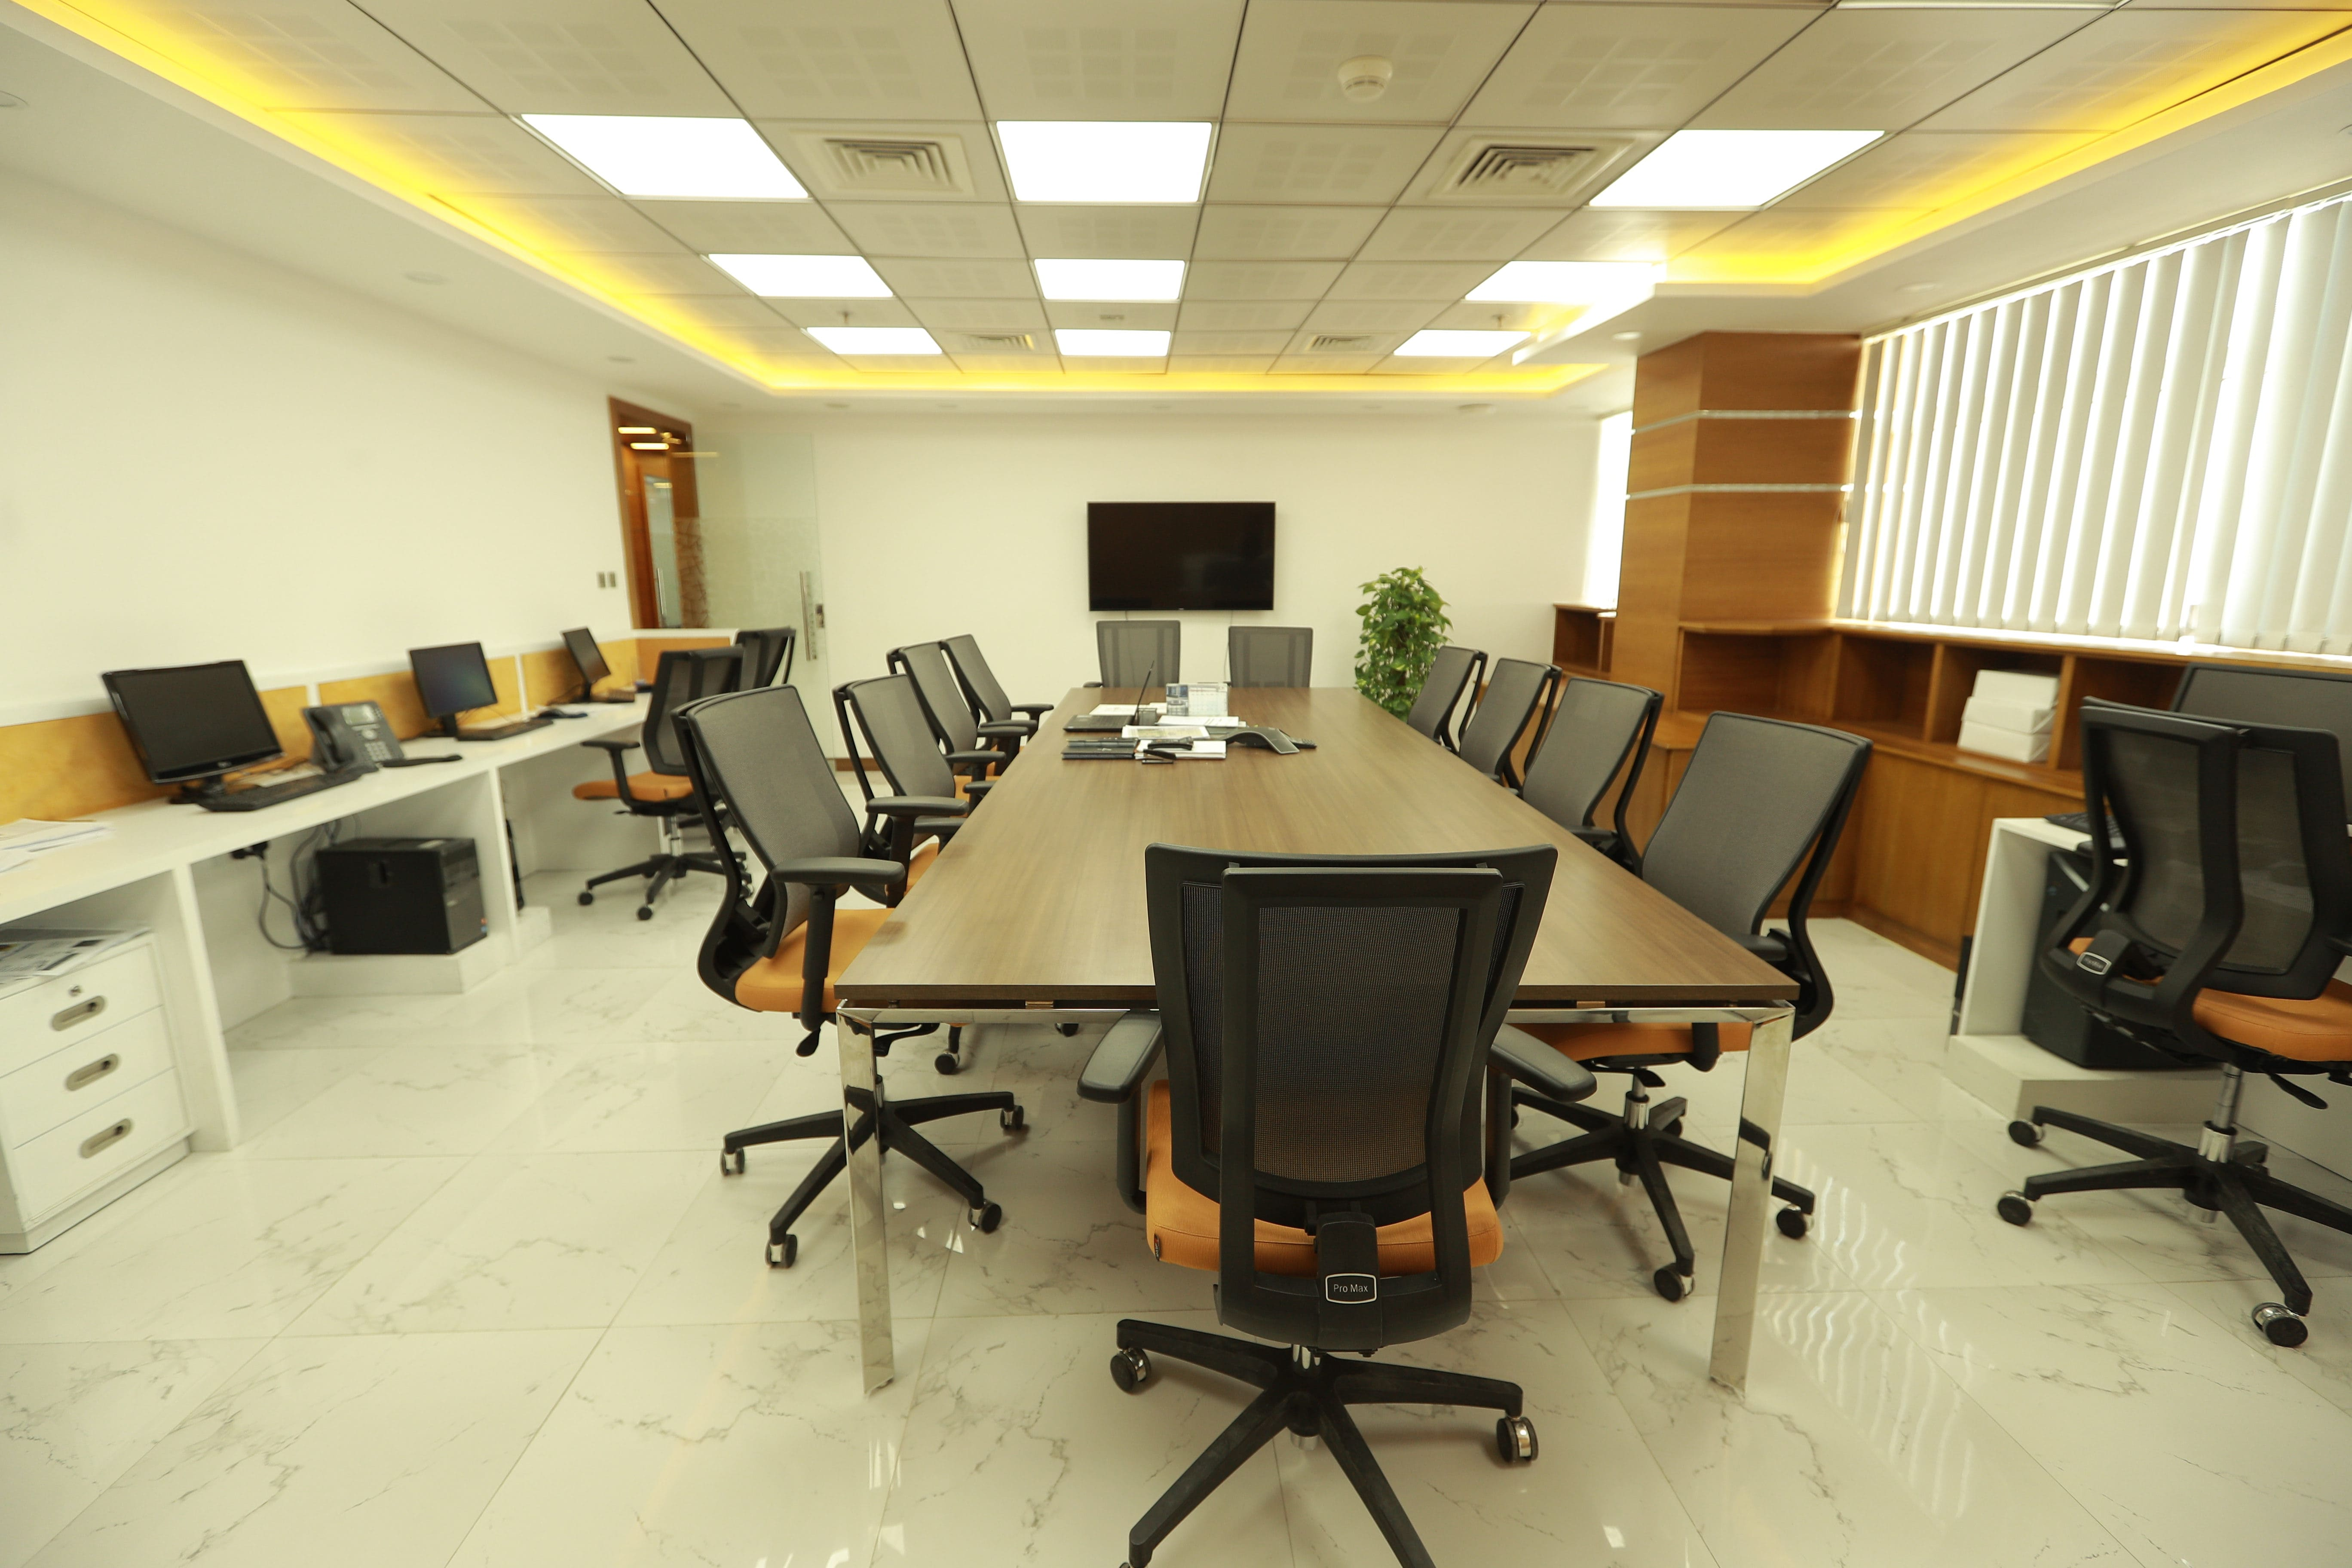 4. Meeting Room 2